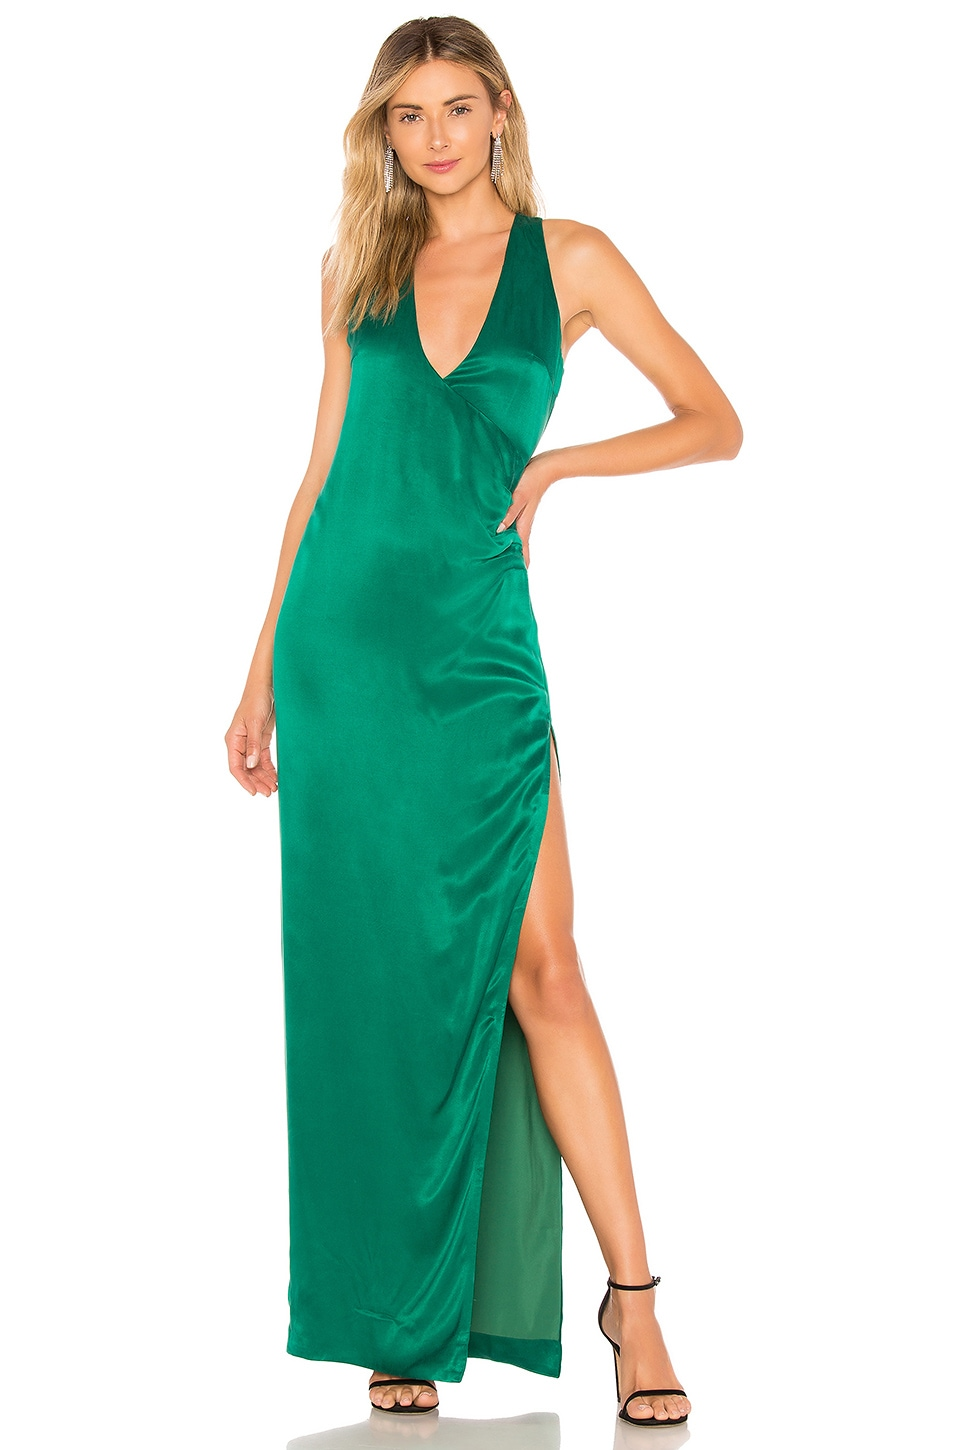 NBD Beverly Blvd Gown in Kelly Green